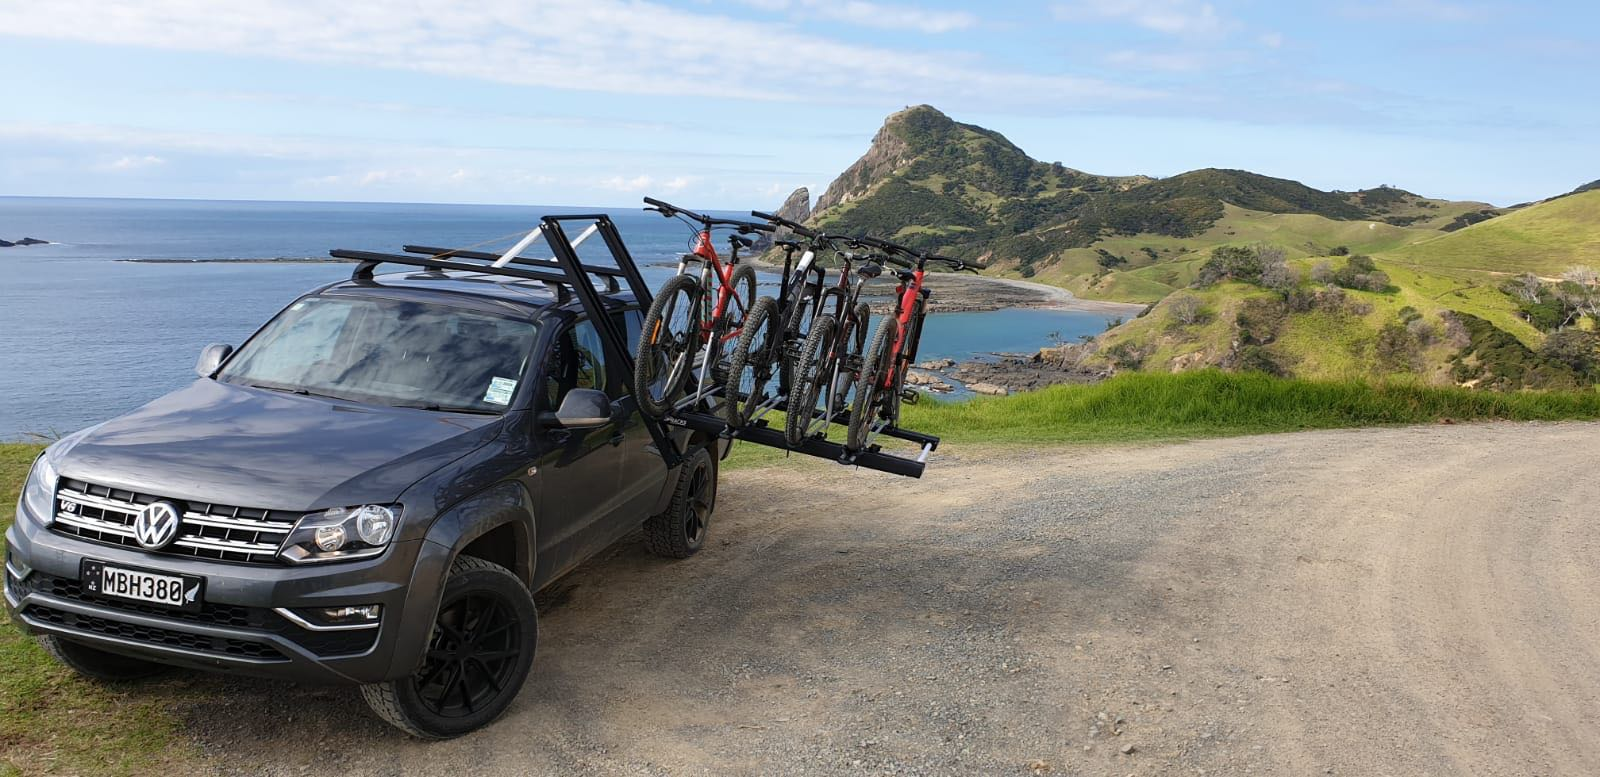 Dropracks roof rack by Utemaster on a Volkswagen Amarok with bike carriers and mountainbikes